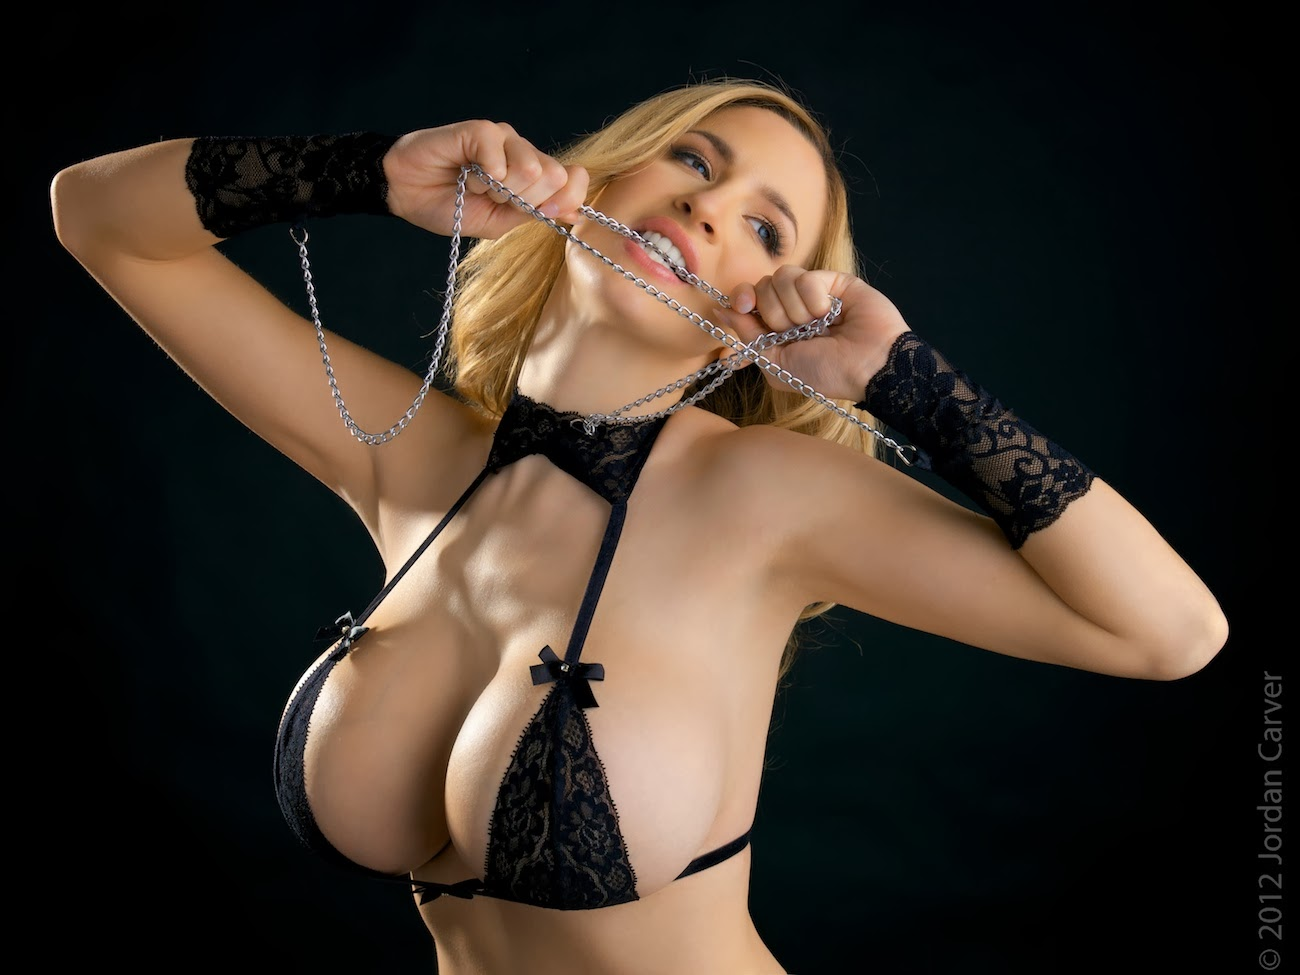 Jordan Carver Tiny Black Magic Bikini And Silver Chain